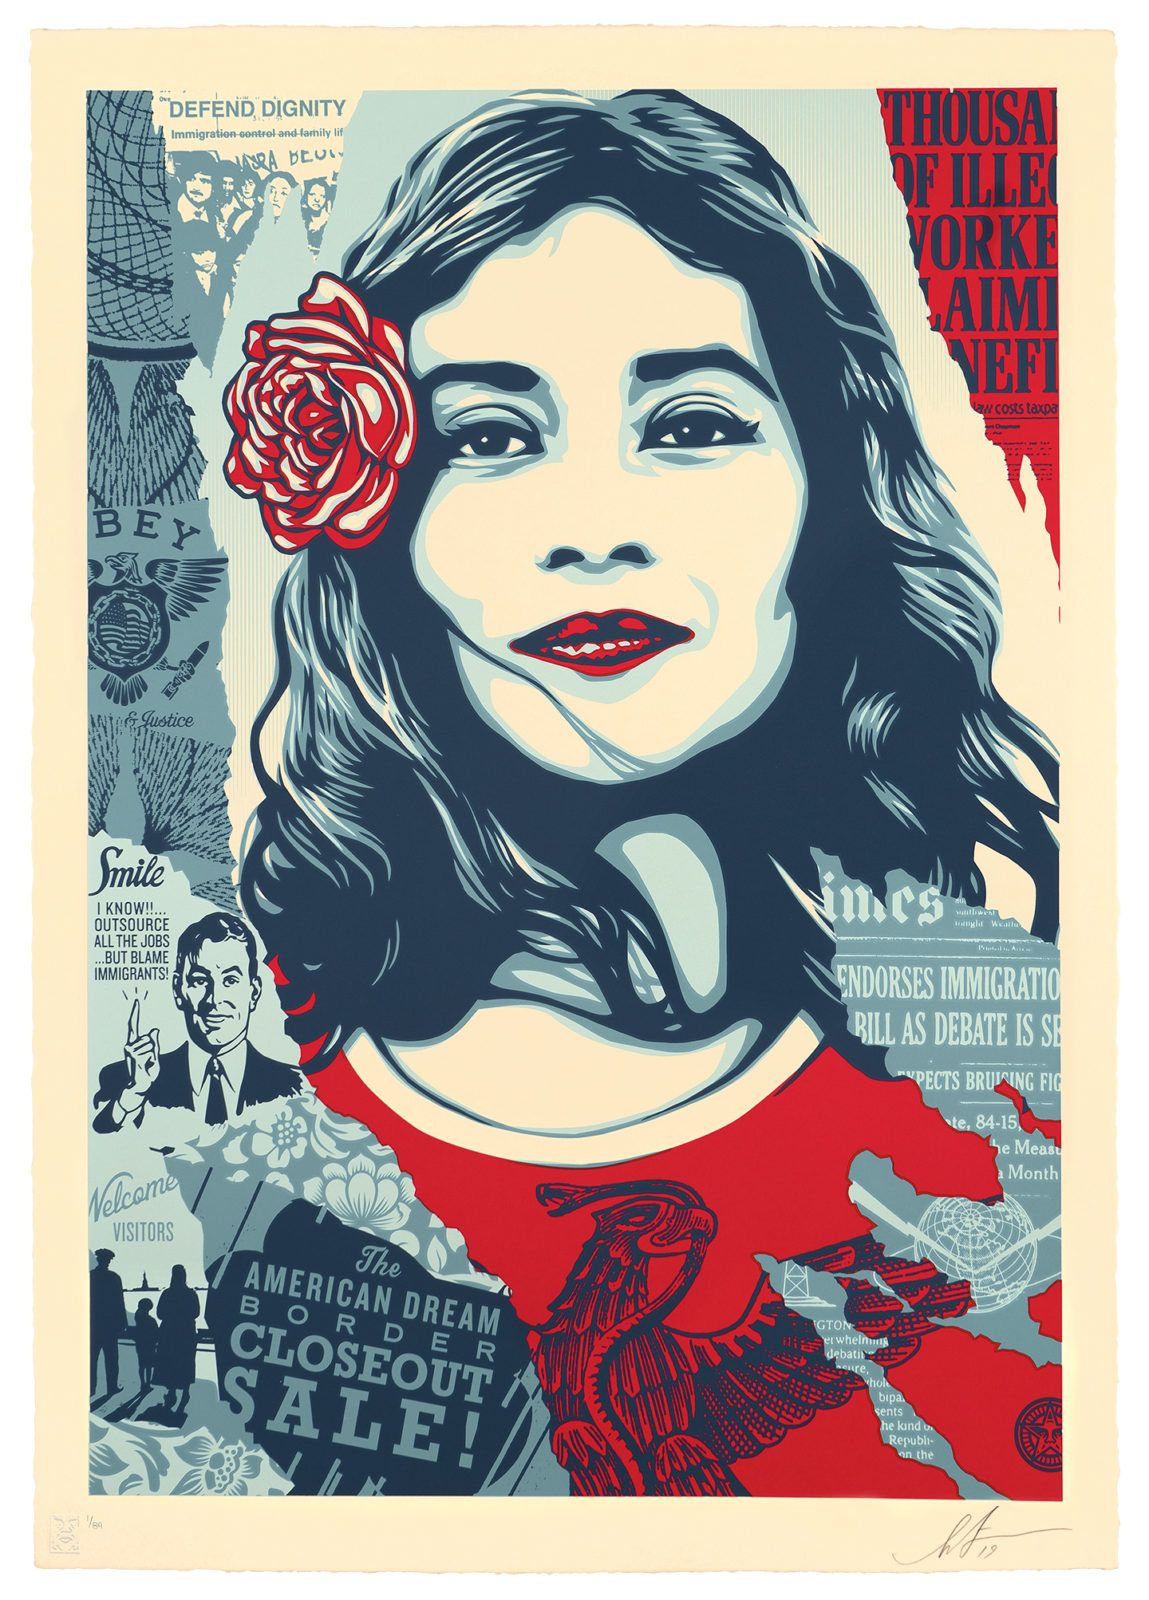 SHEPARD FAIREY poster 24X36 WE THE PEOPLE DEFEND DIGNITY obey art print